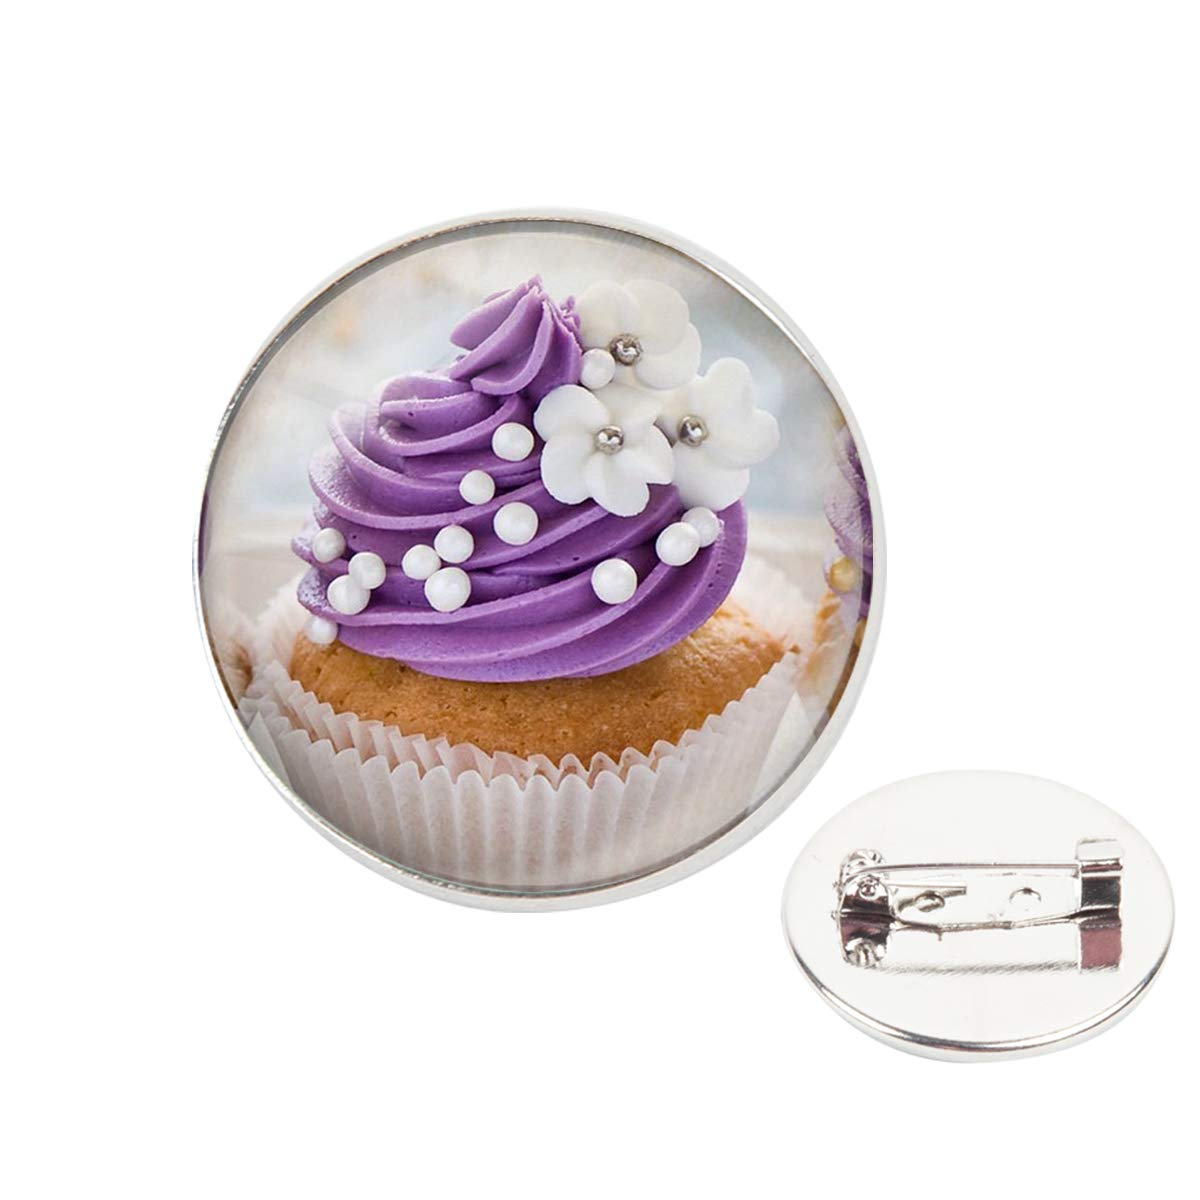 Pinback Buttons Badges Pins Purple White Pearl Cupcake Lapel Pin Brooch Clip Trendy Accessory Jacket T-Shirt Bag Hat Shoe